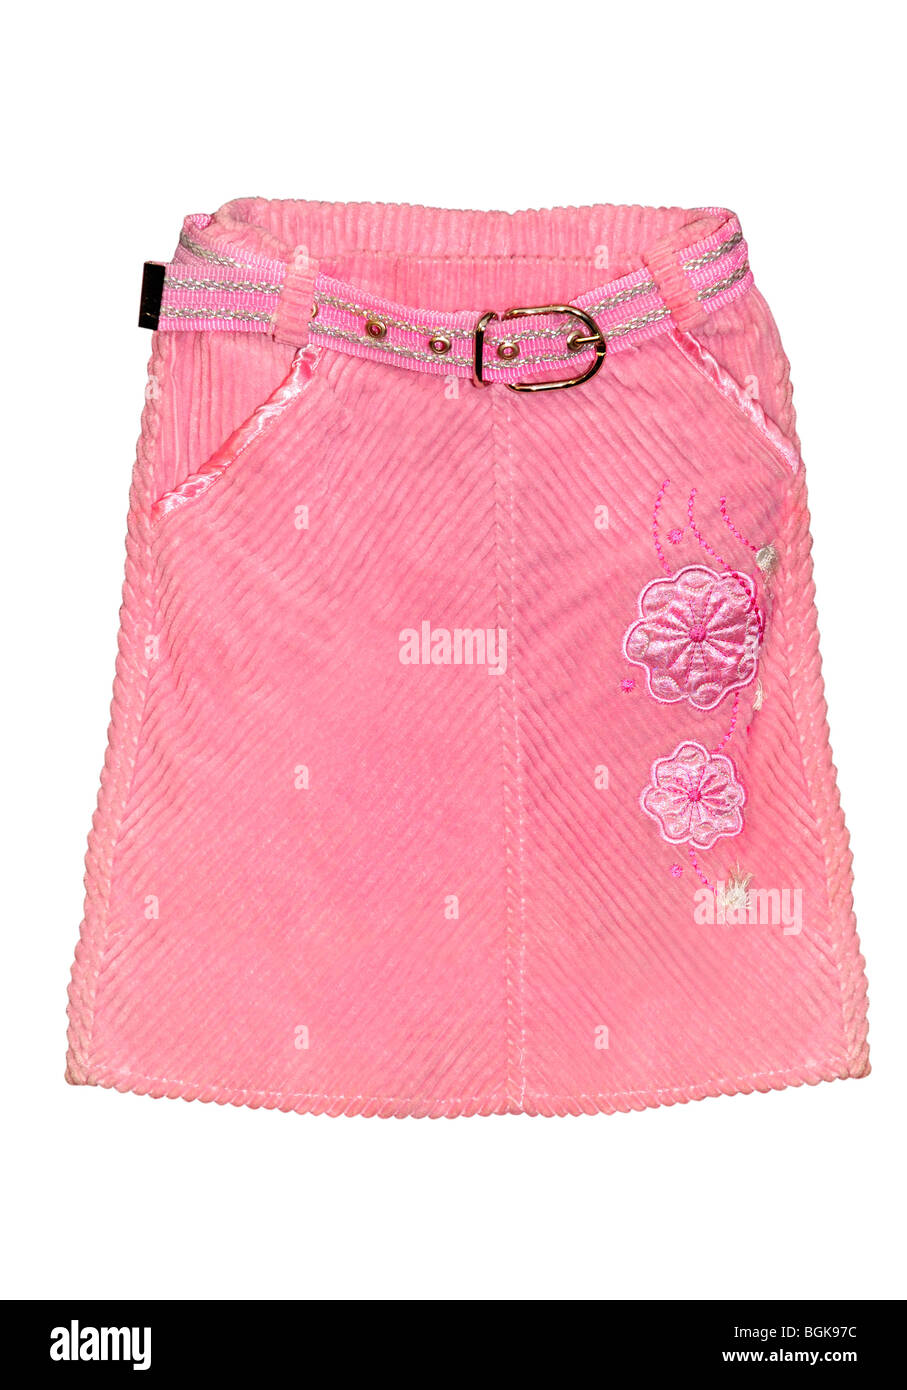 Children's clothing pink skirt isolated on white background - Stock Image